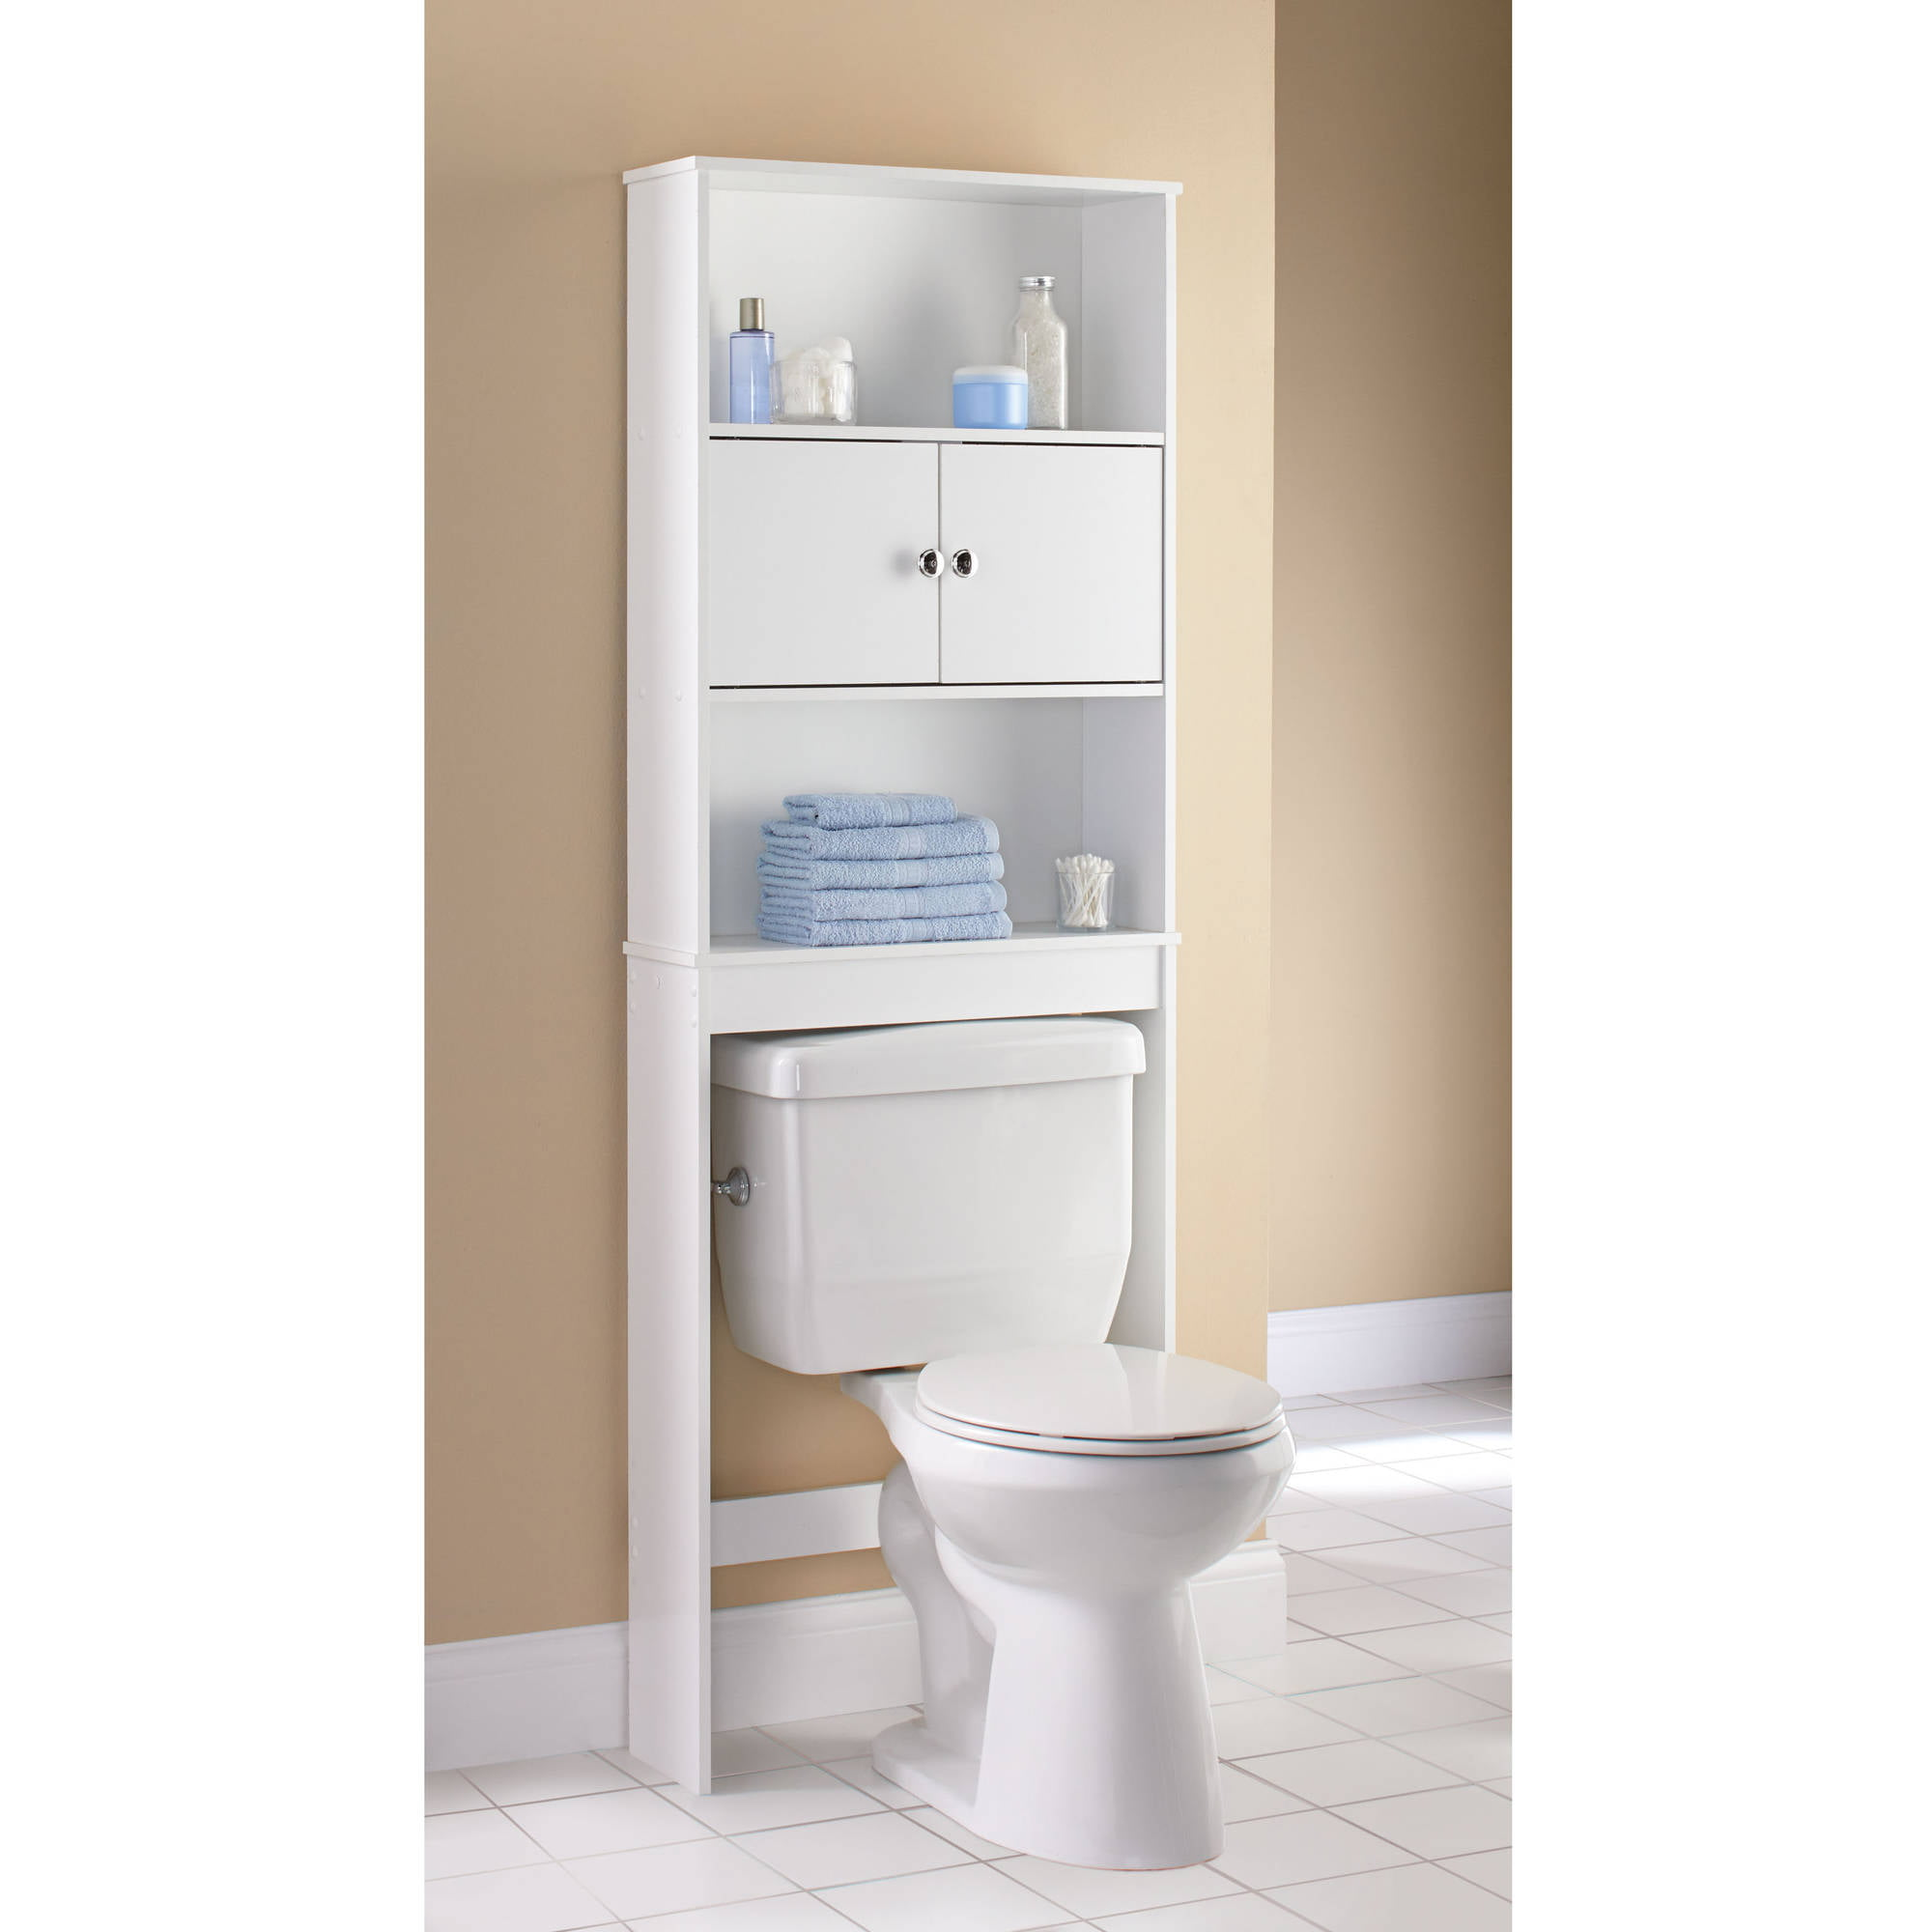 Mainstays Bathroom Space Saver, White